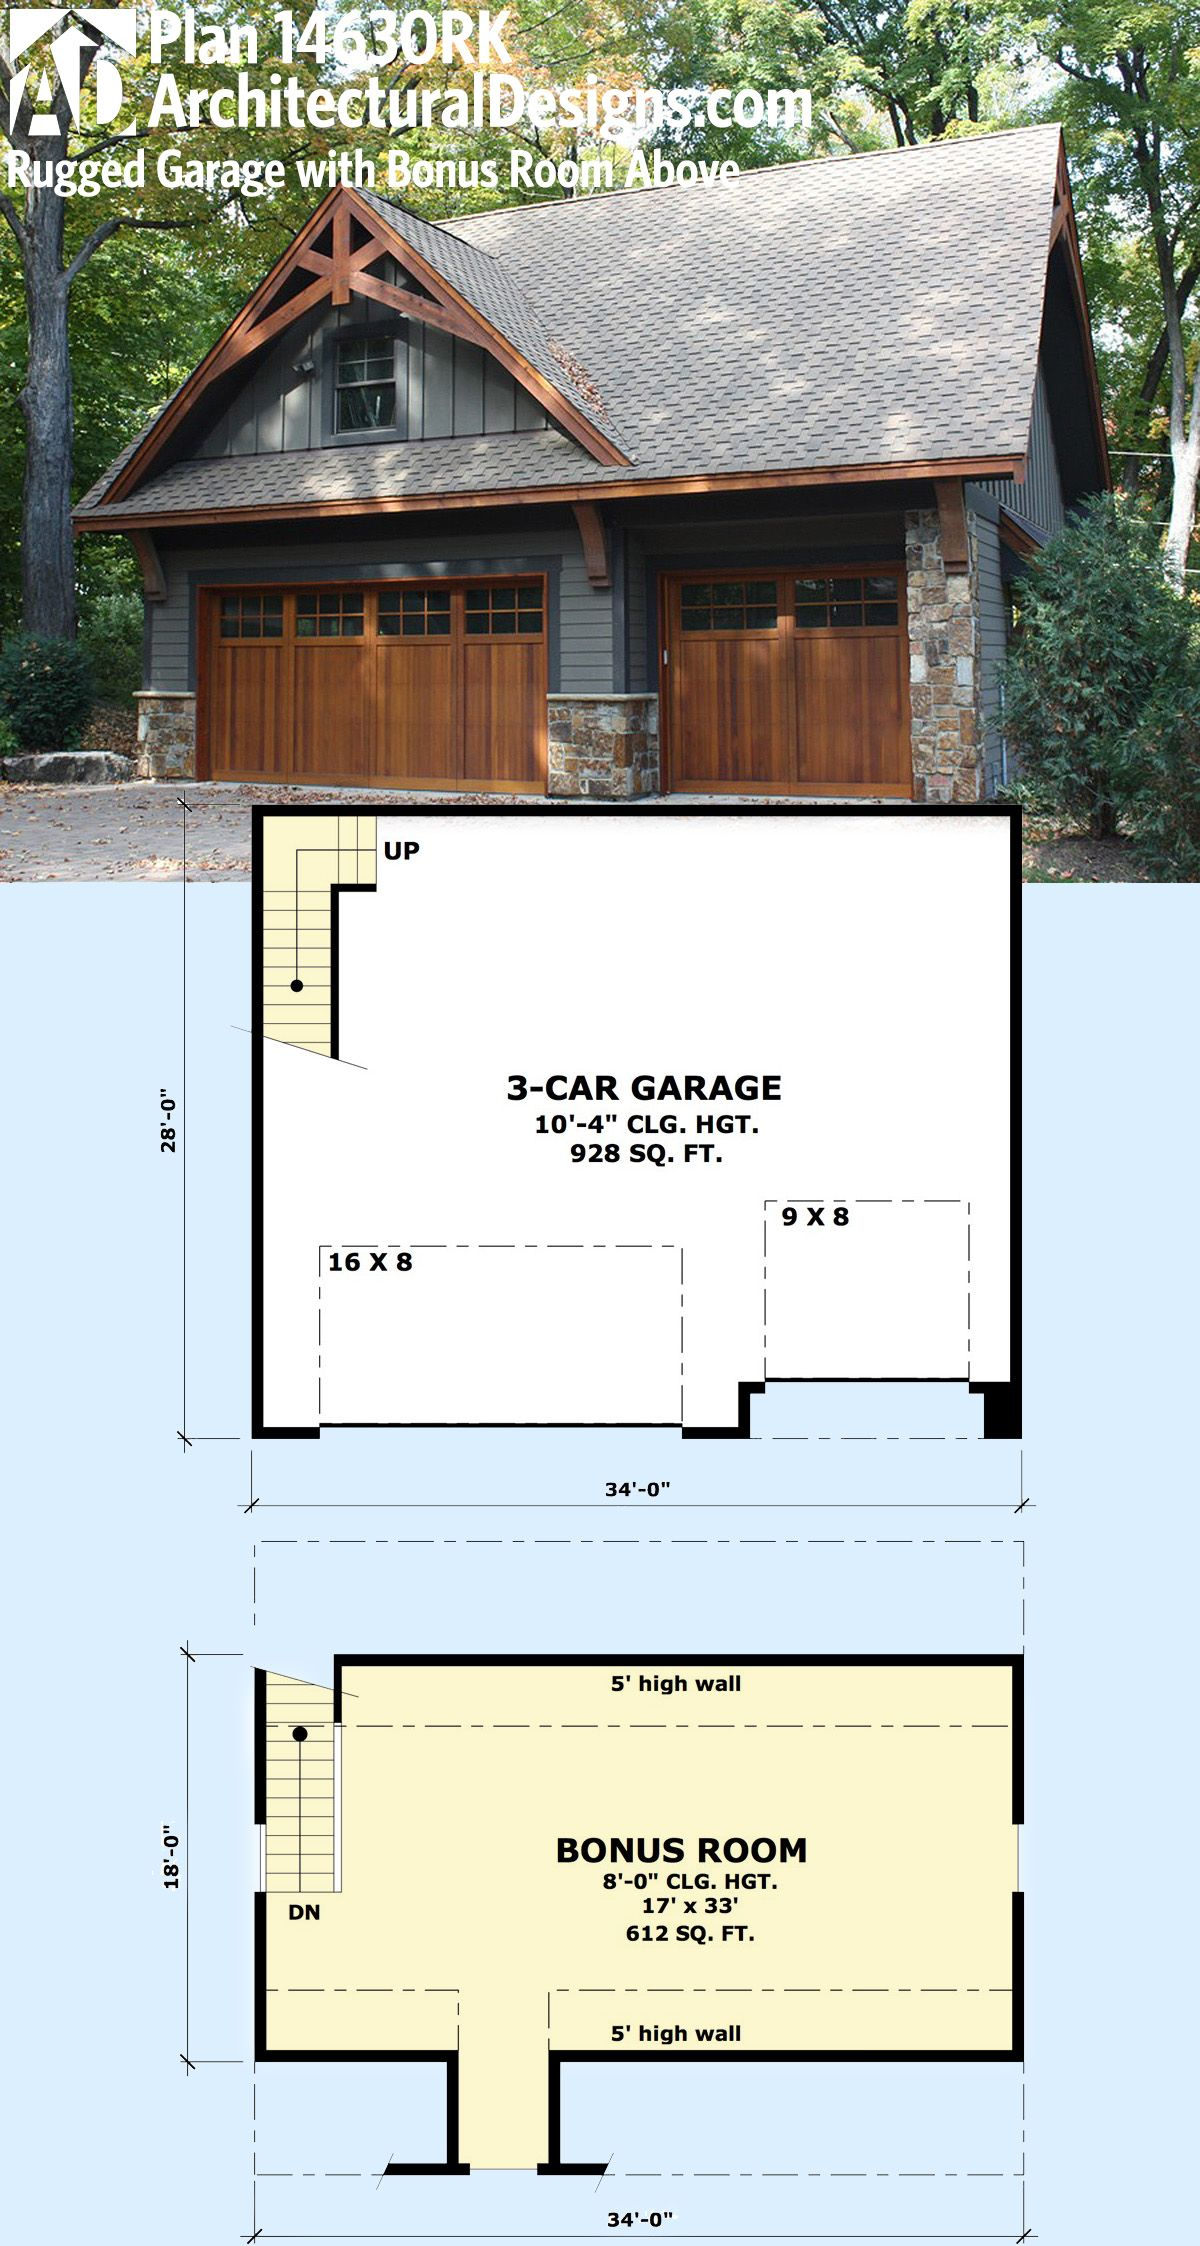 Plan 14630rk rugged garage with bonus room above garage for Garage plans with bonus room